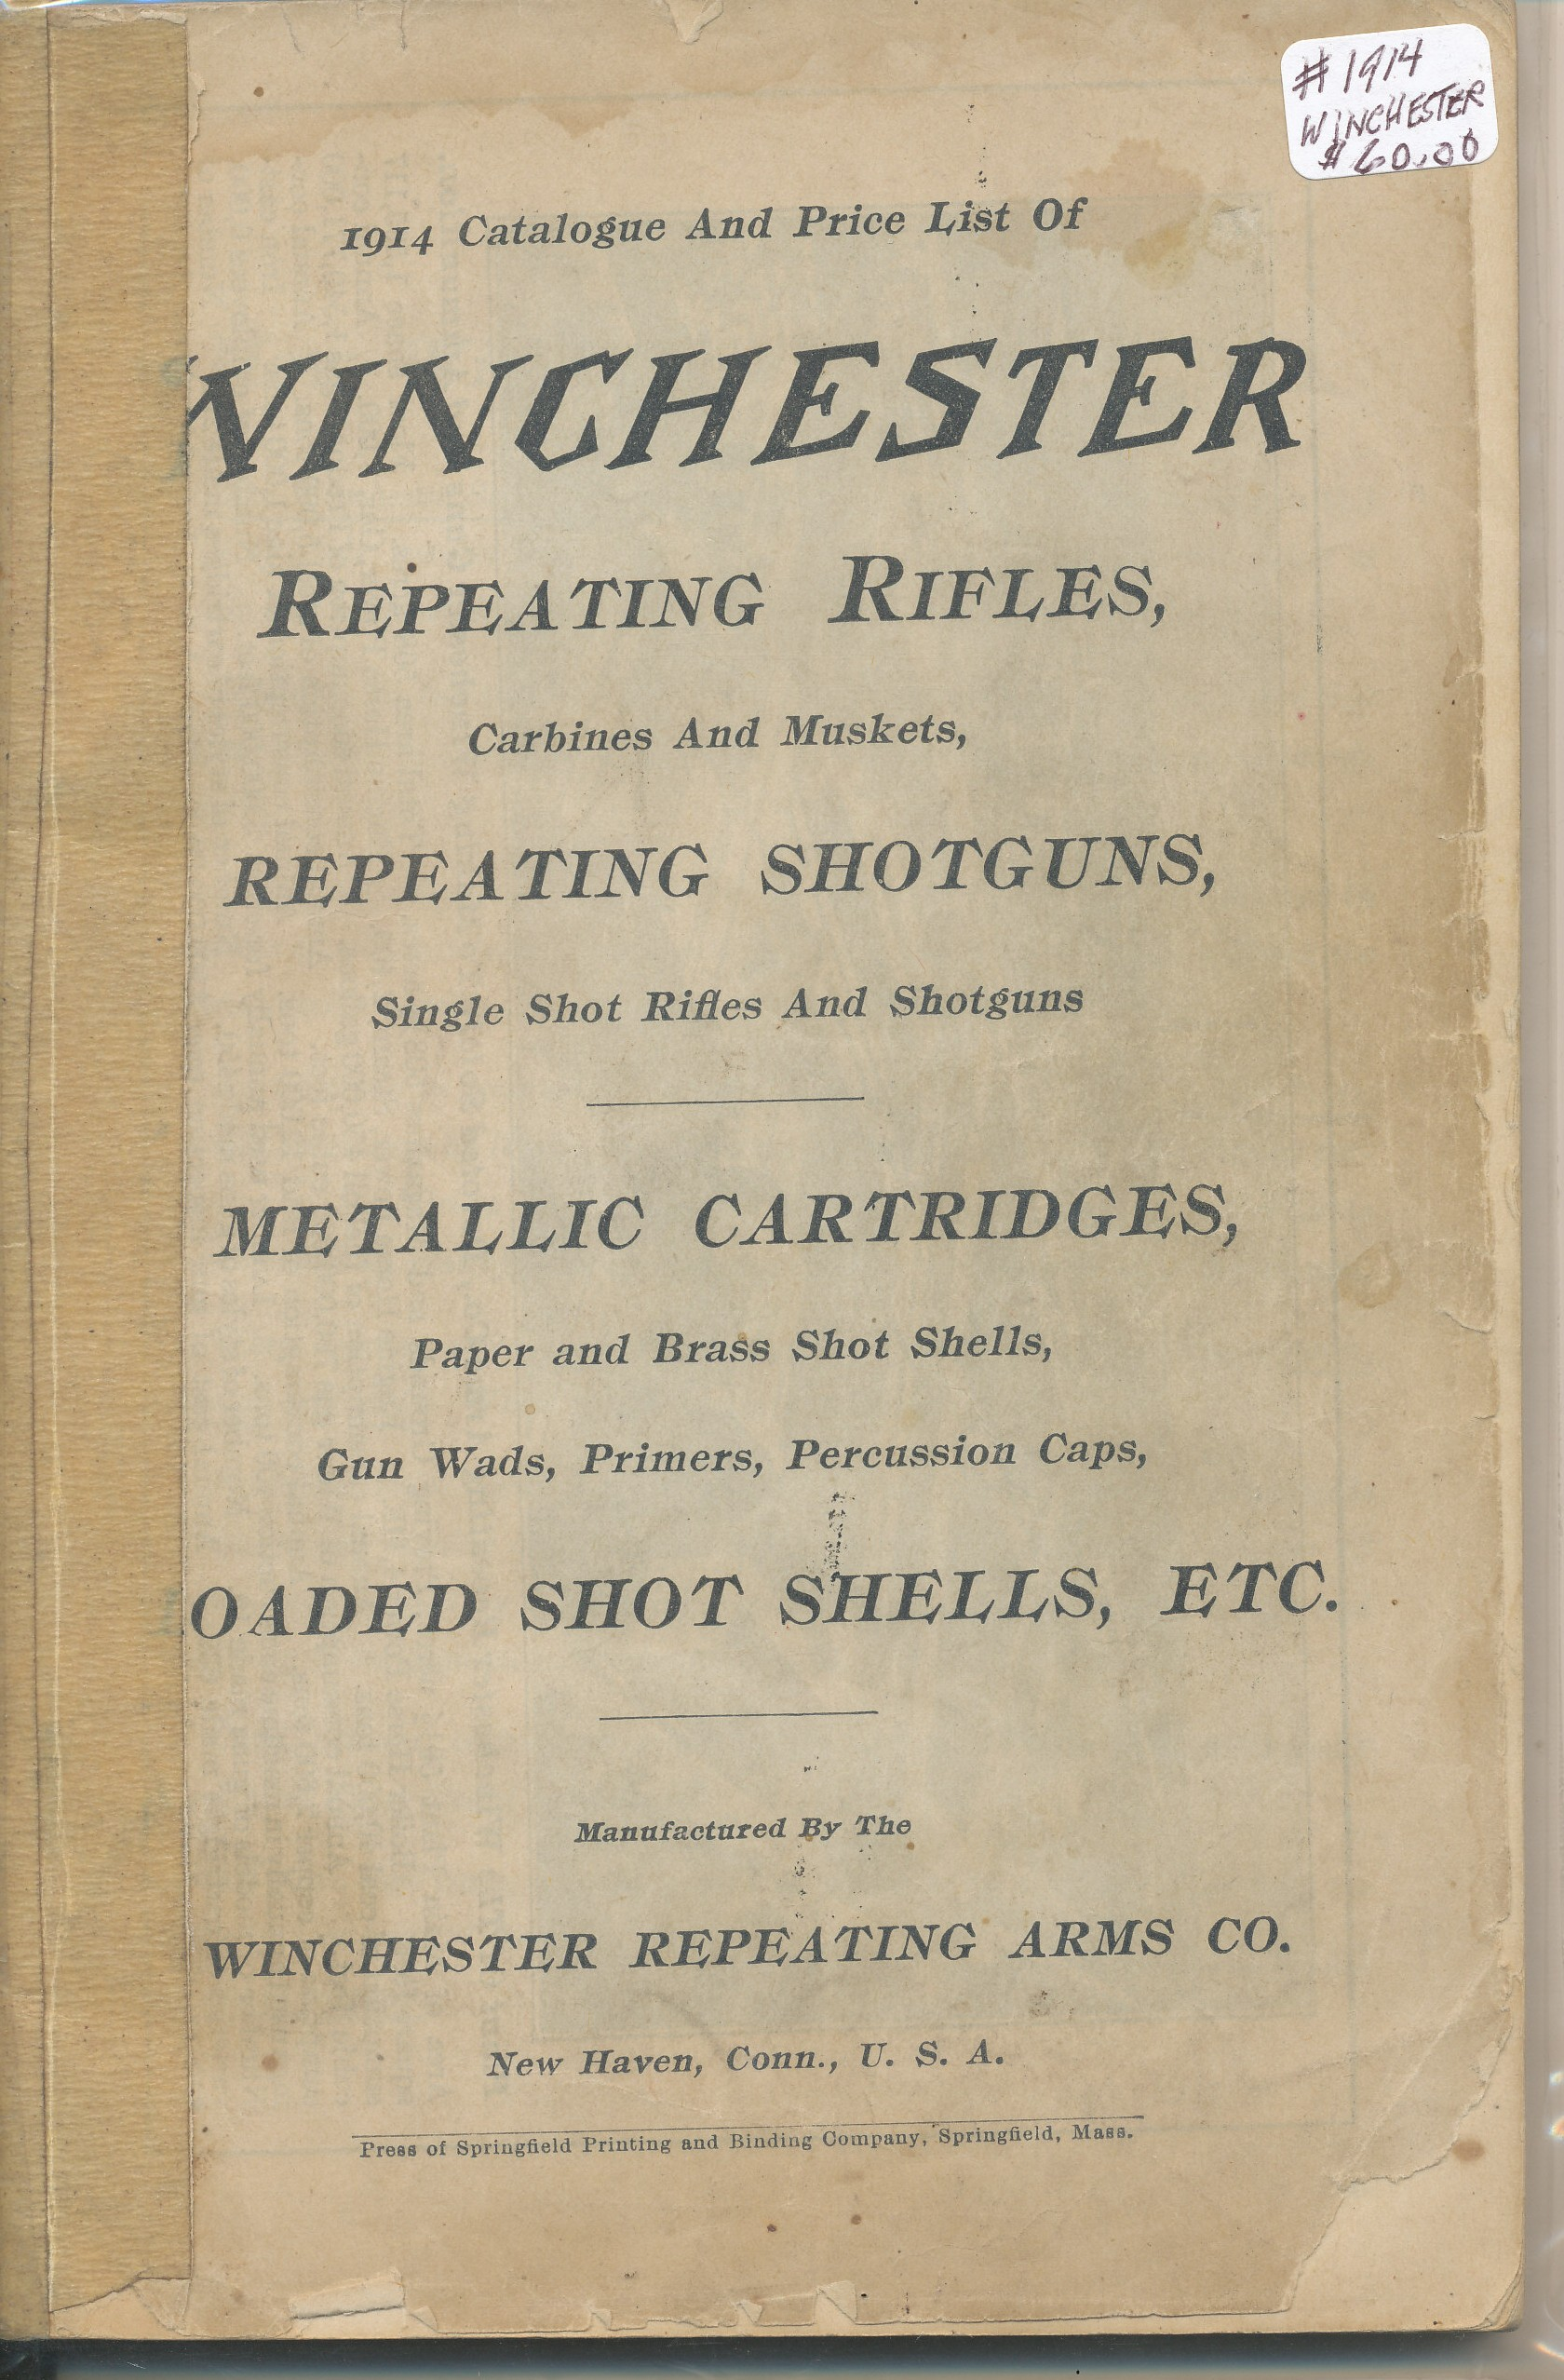 1914 Winchester Catalogue and Price List